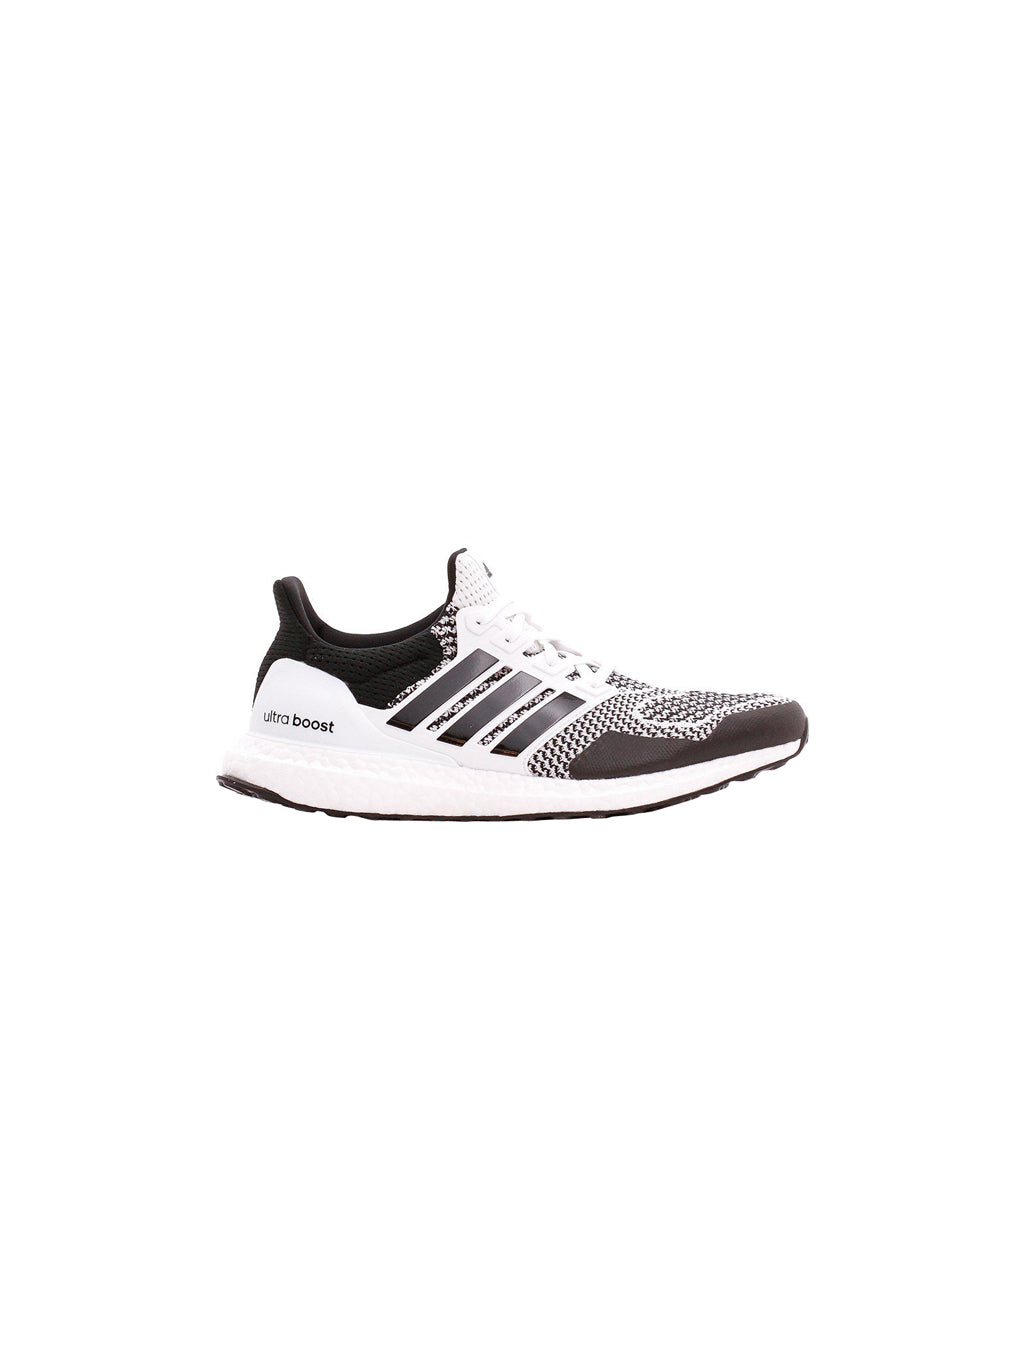 Black & White Ultraboost 1.0 DNA Running Shoes